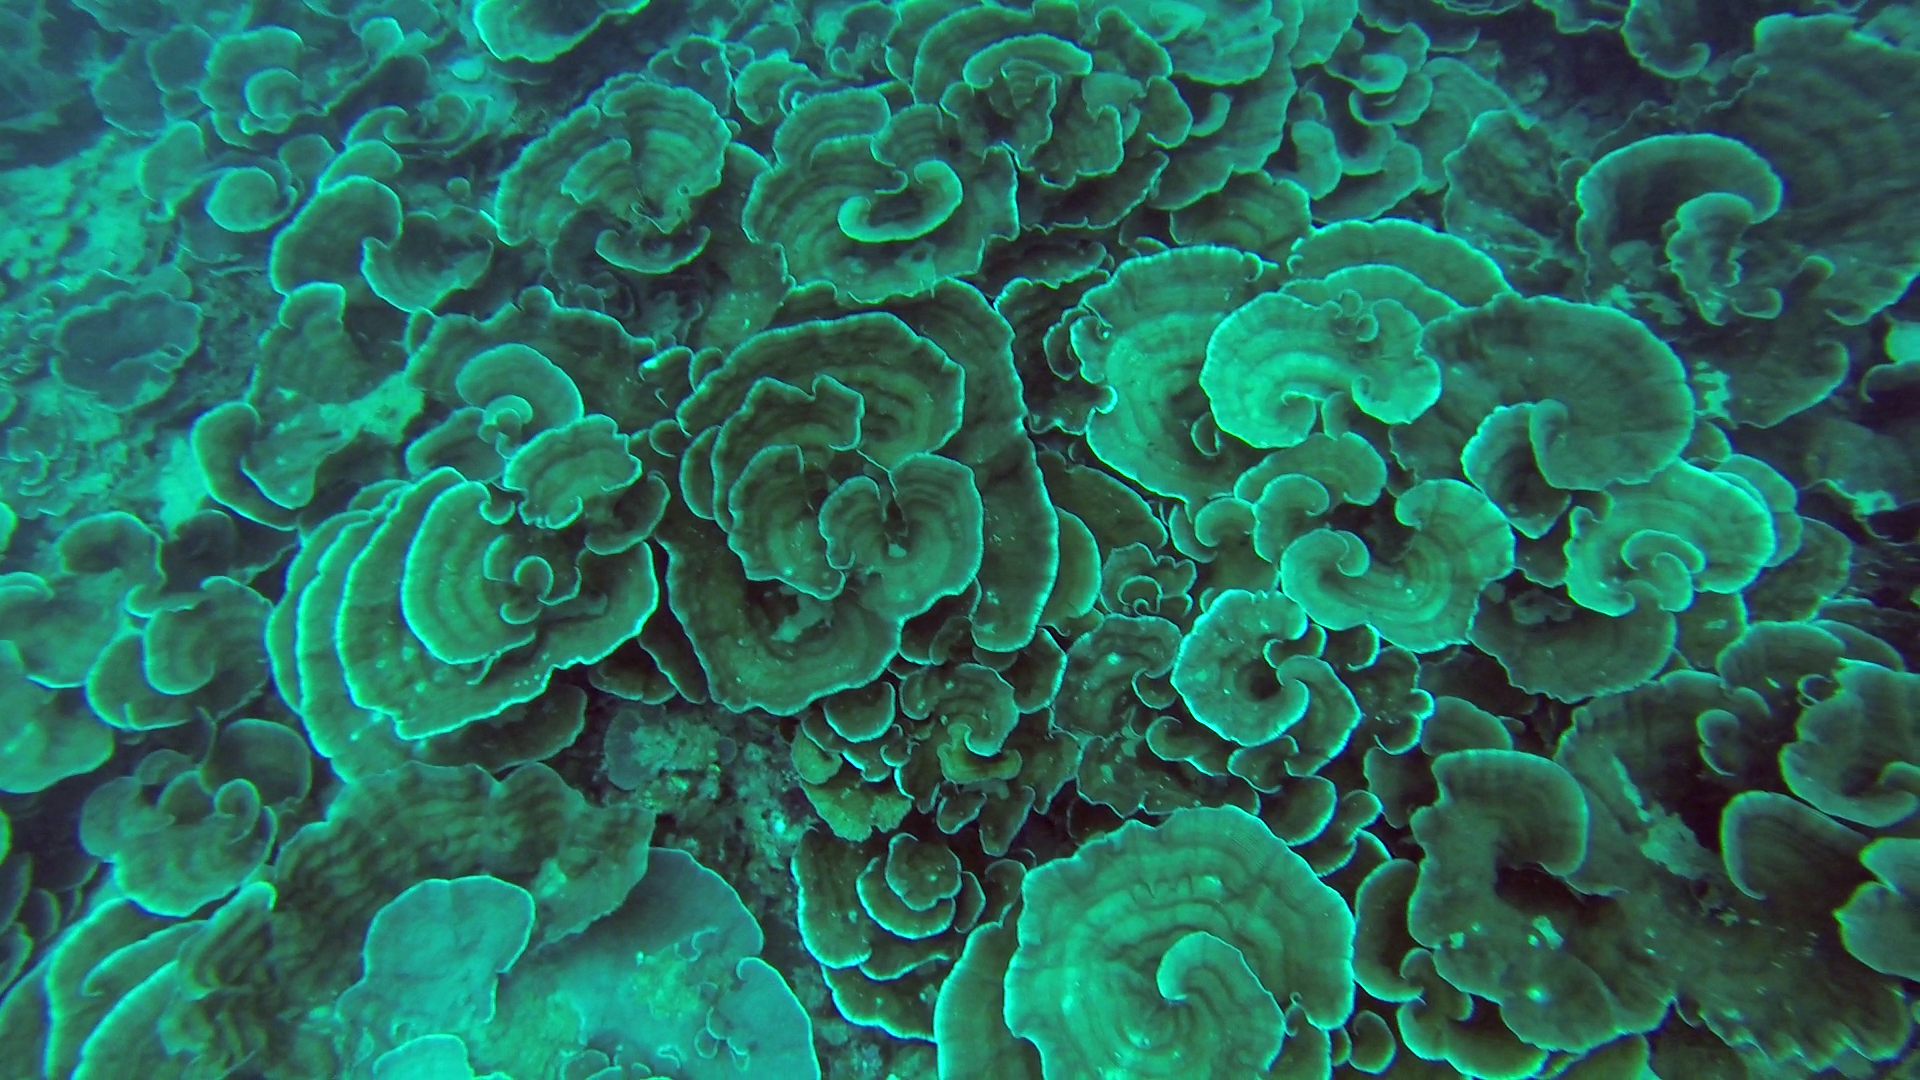 2. Coral Reef Ecology